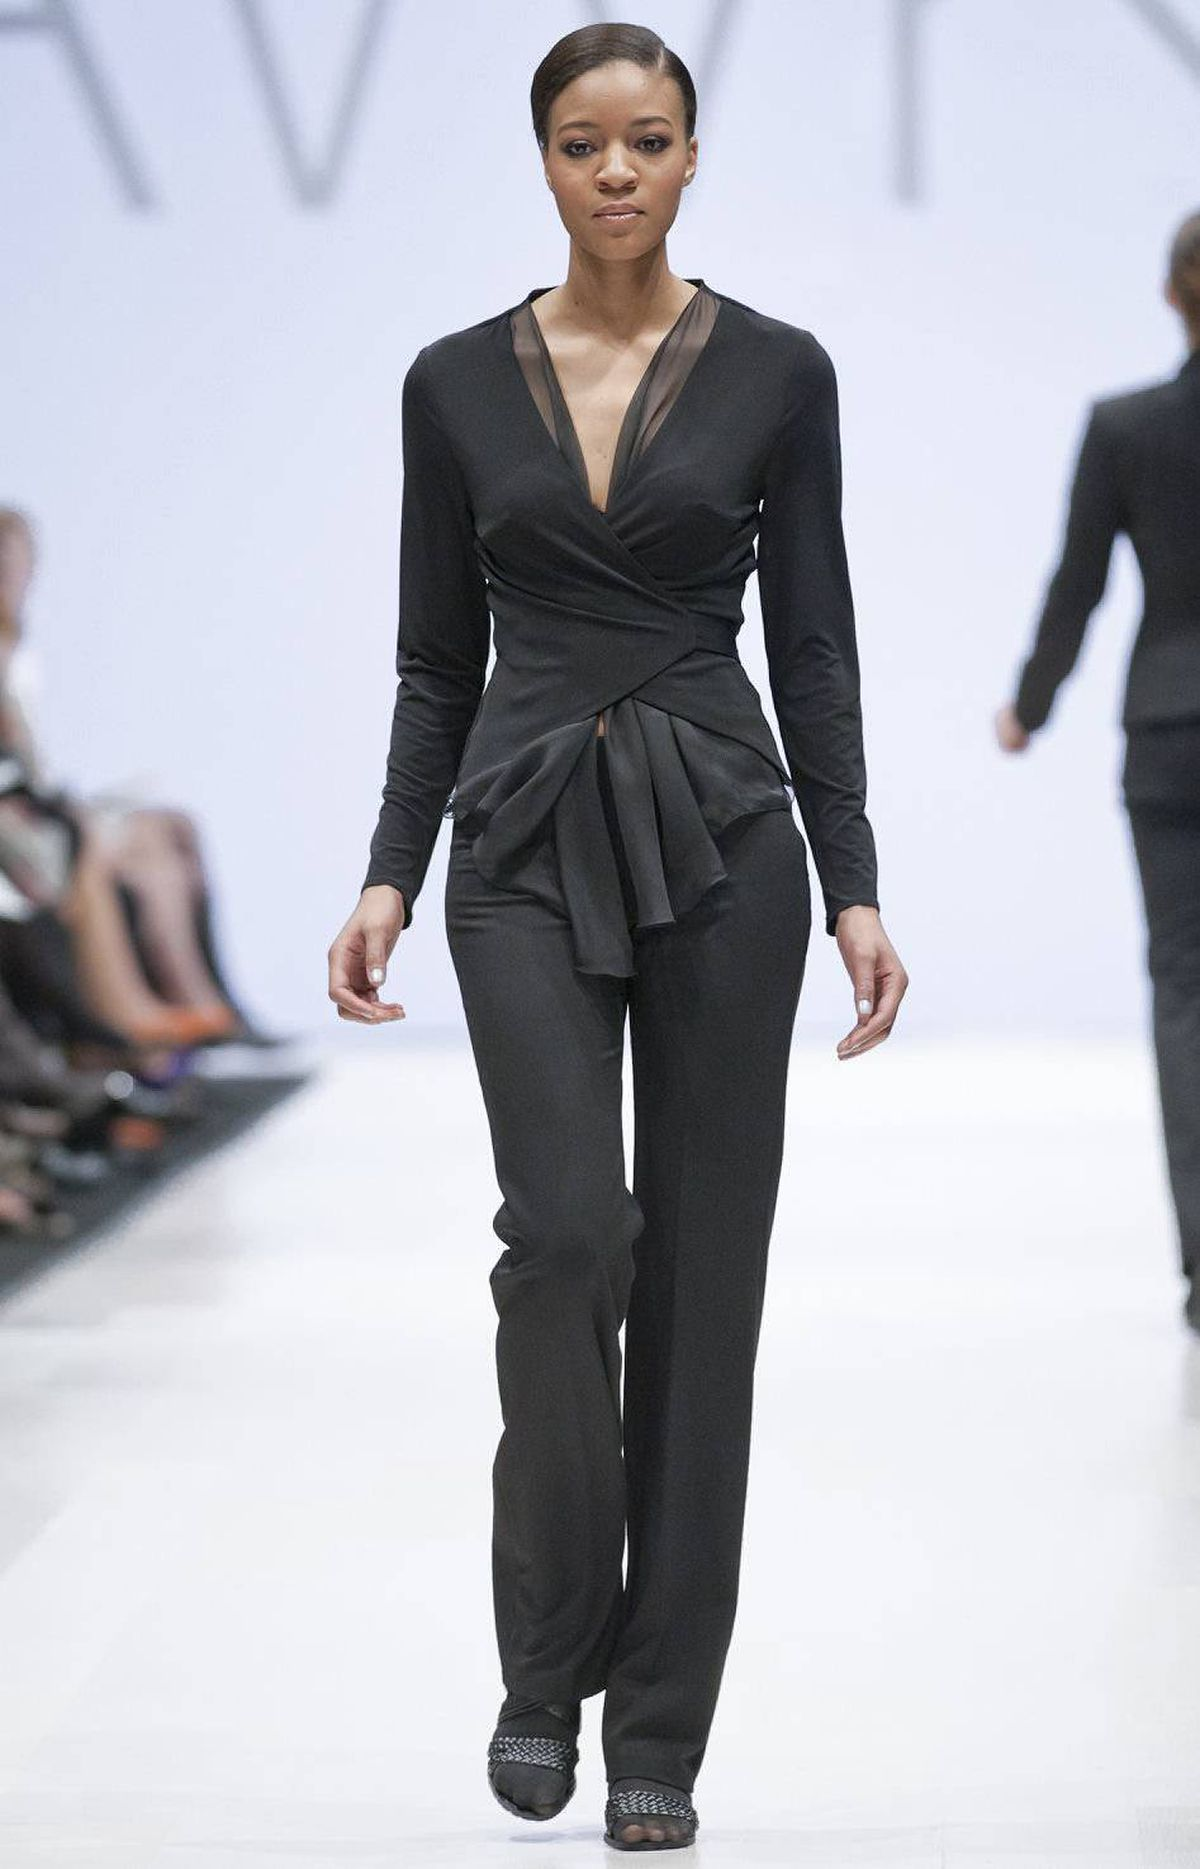 Earlier in the day, VAWK designer Sunny Fong also tried his hand at more-accessible fashion, introducing his label's new sister collection called VAWKKIN, featuring tailored, office-ready separates worn on the runway by real women the designer cast using an open call.